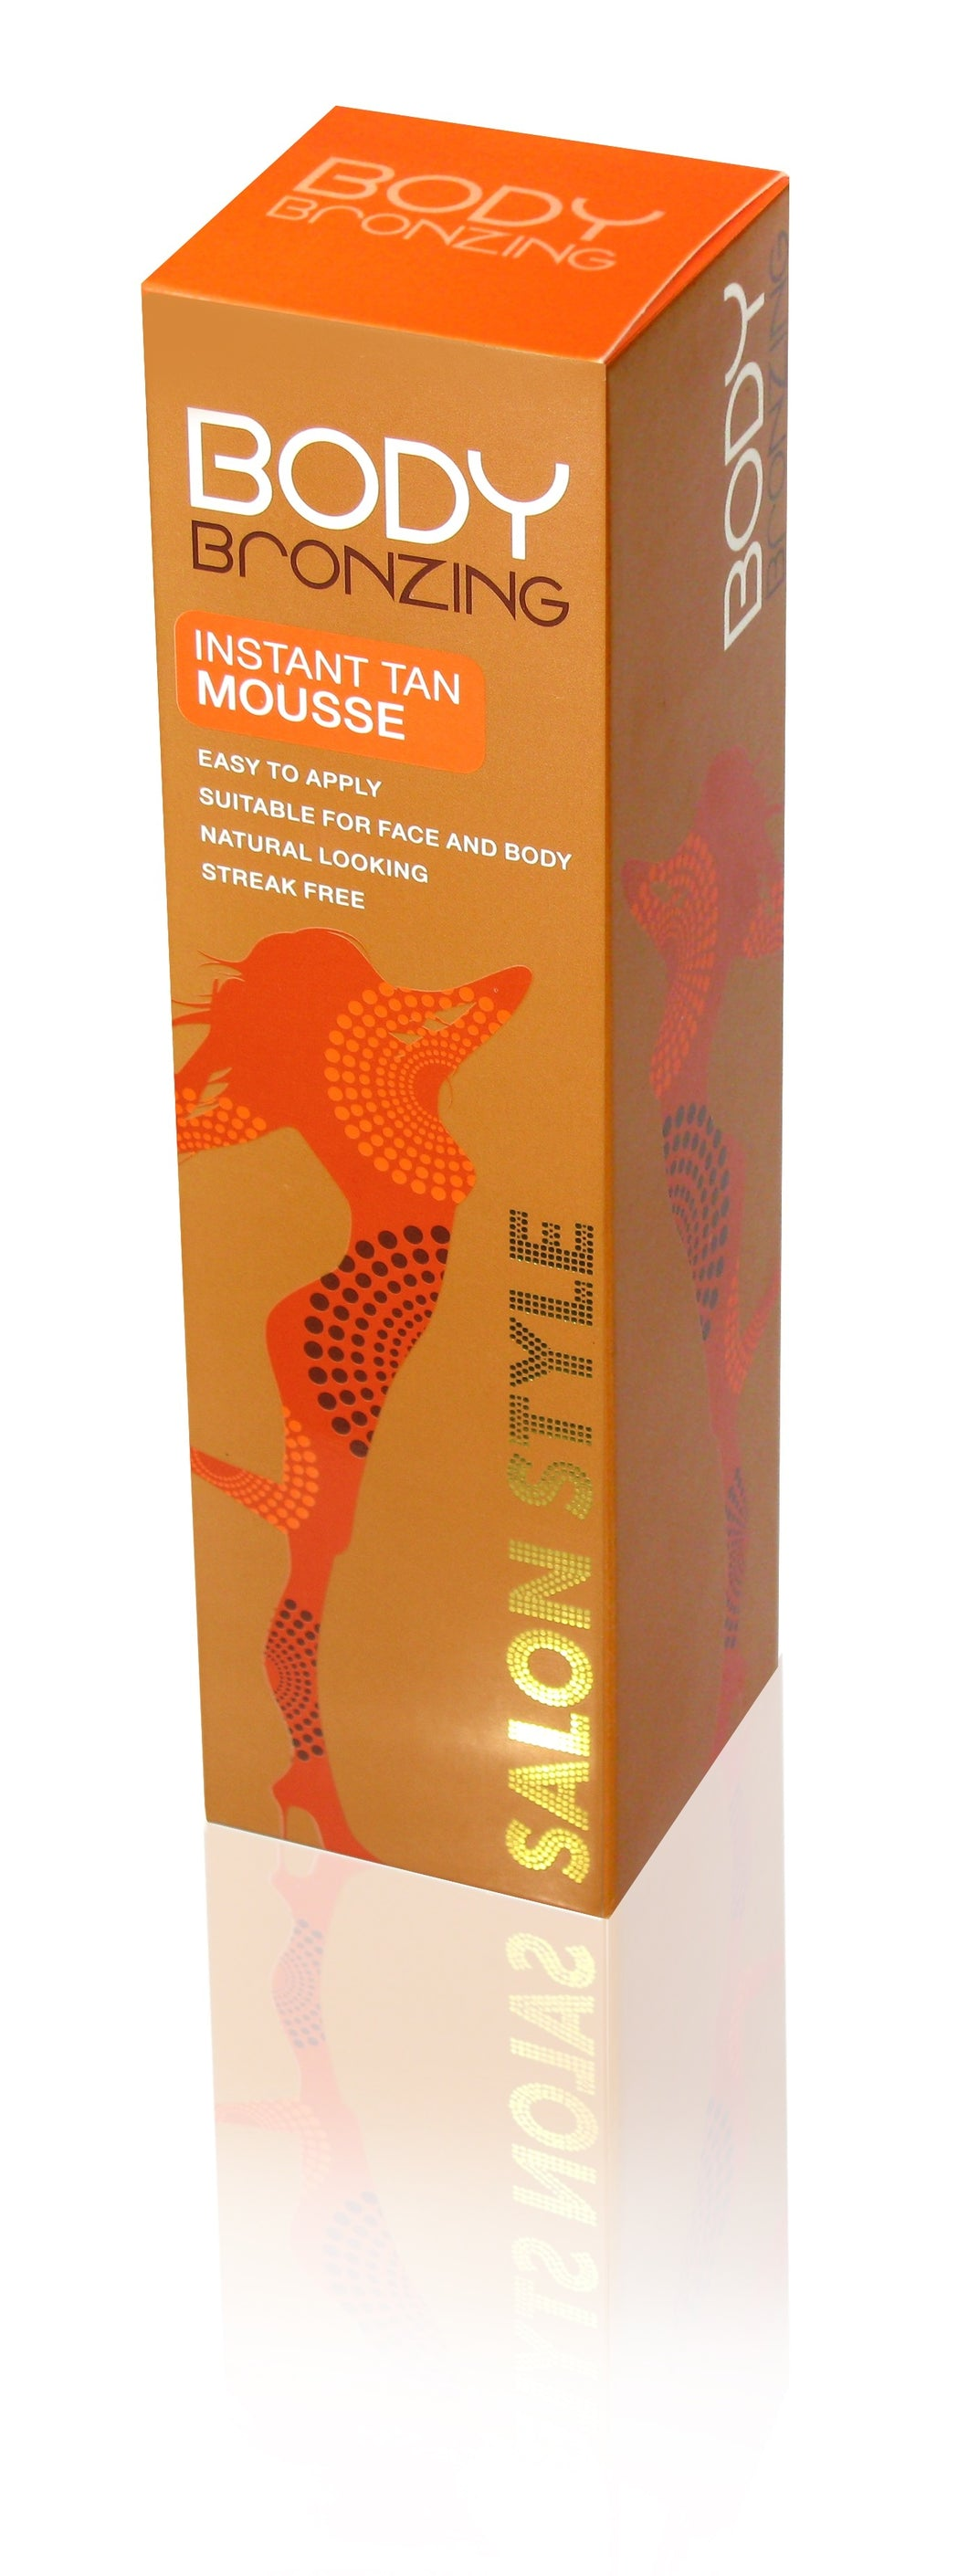 Body Bronzing Instant Tan Mousse, 200ml